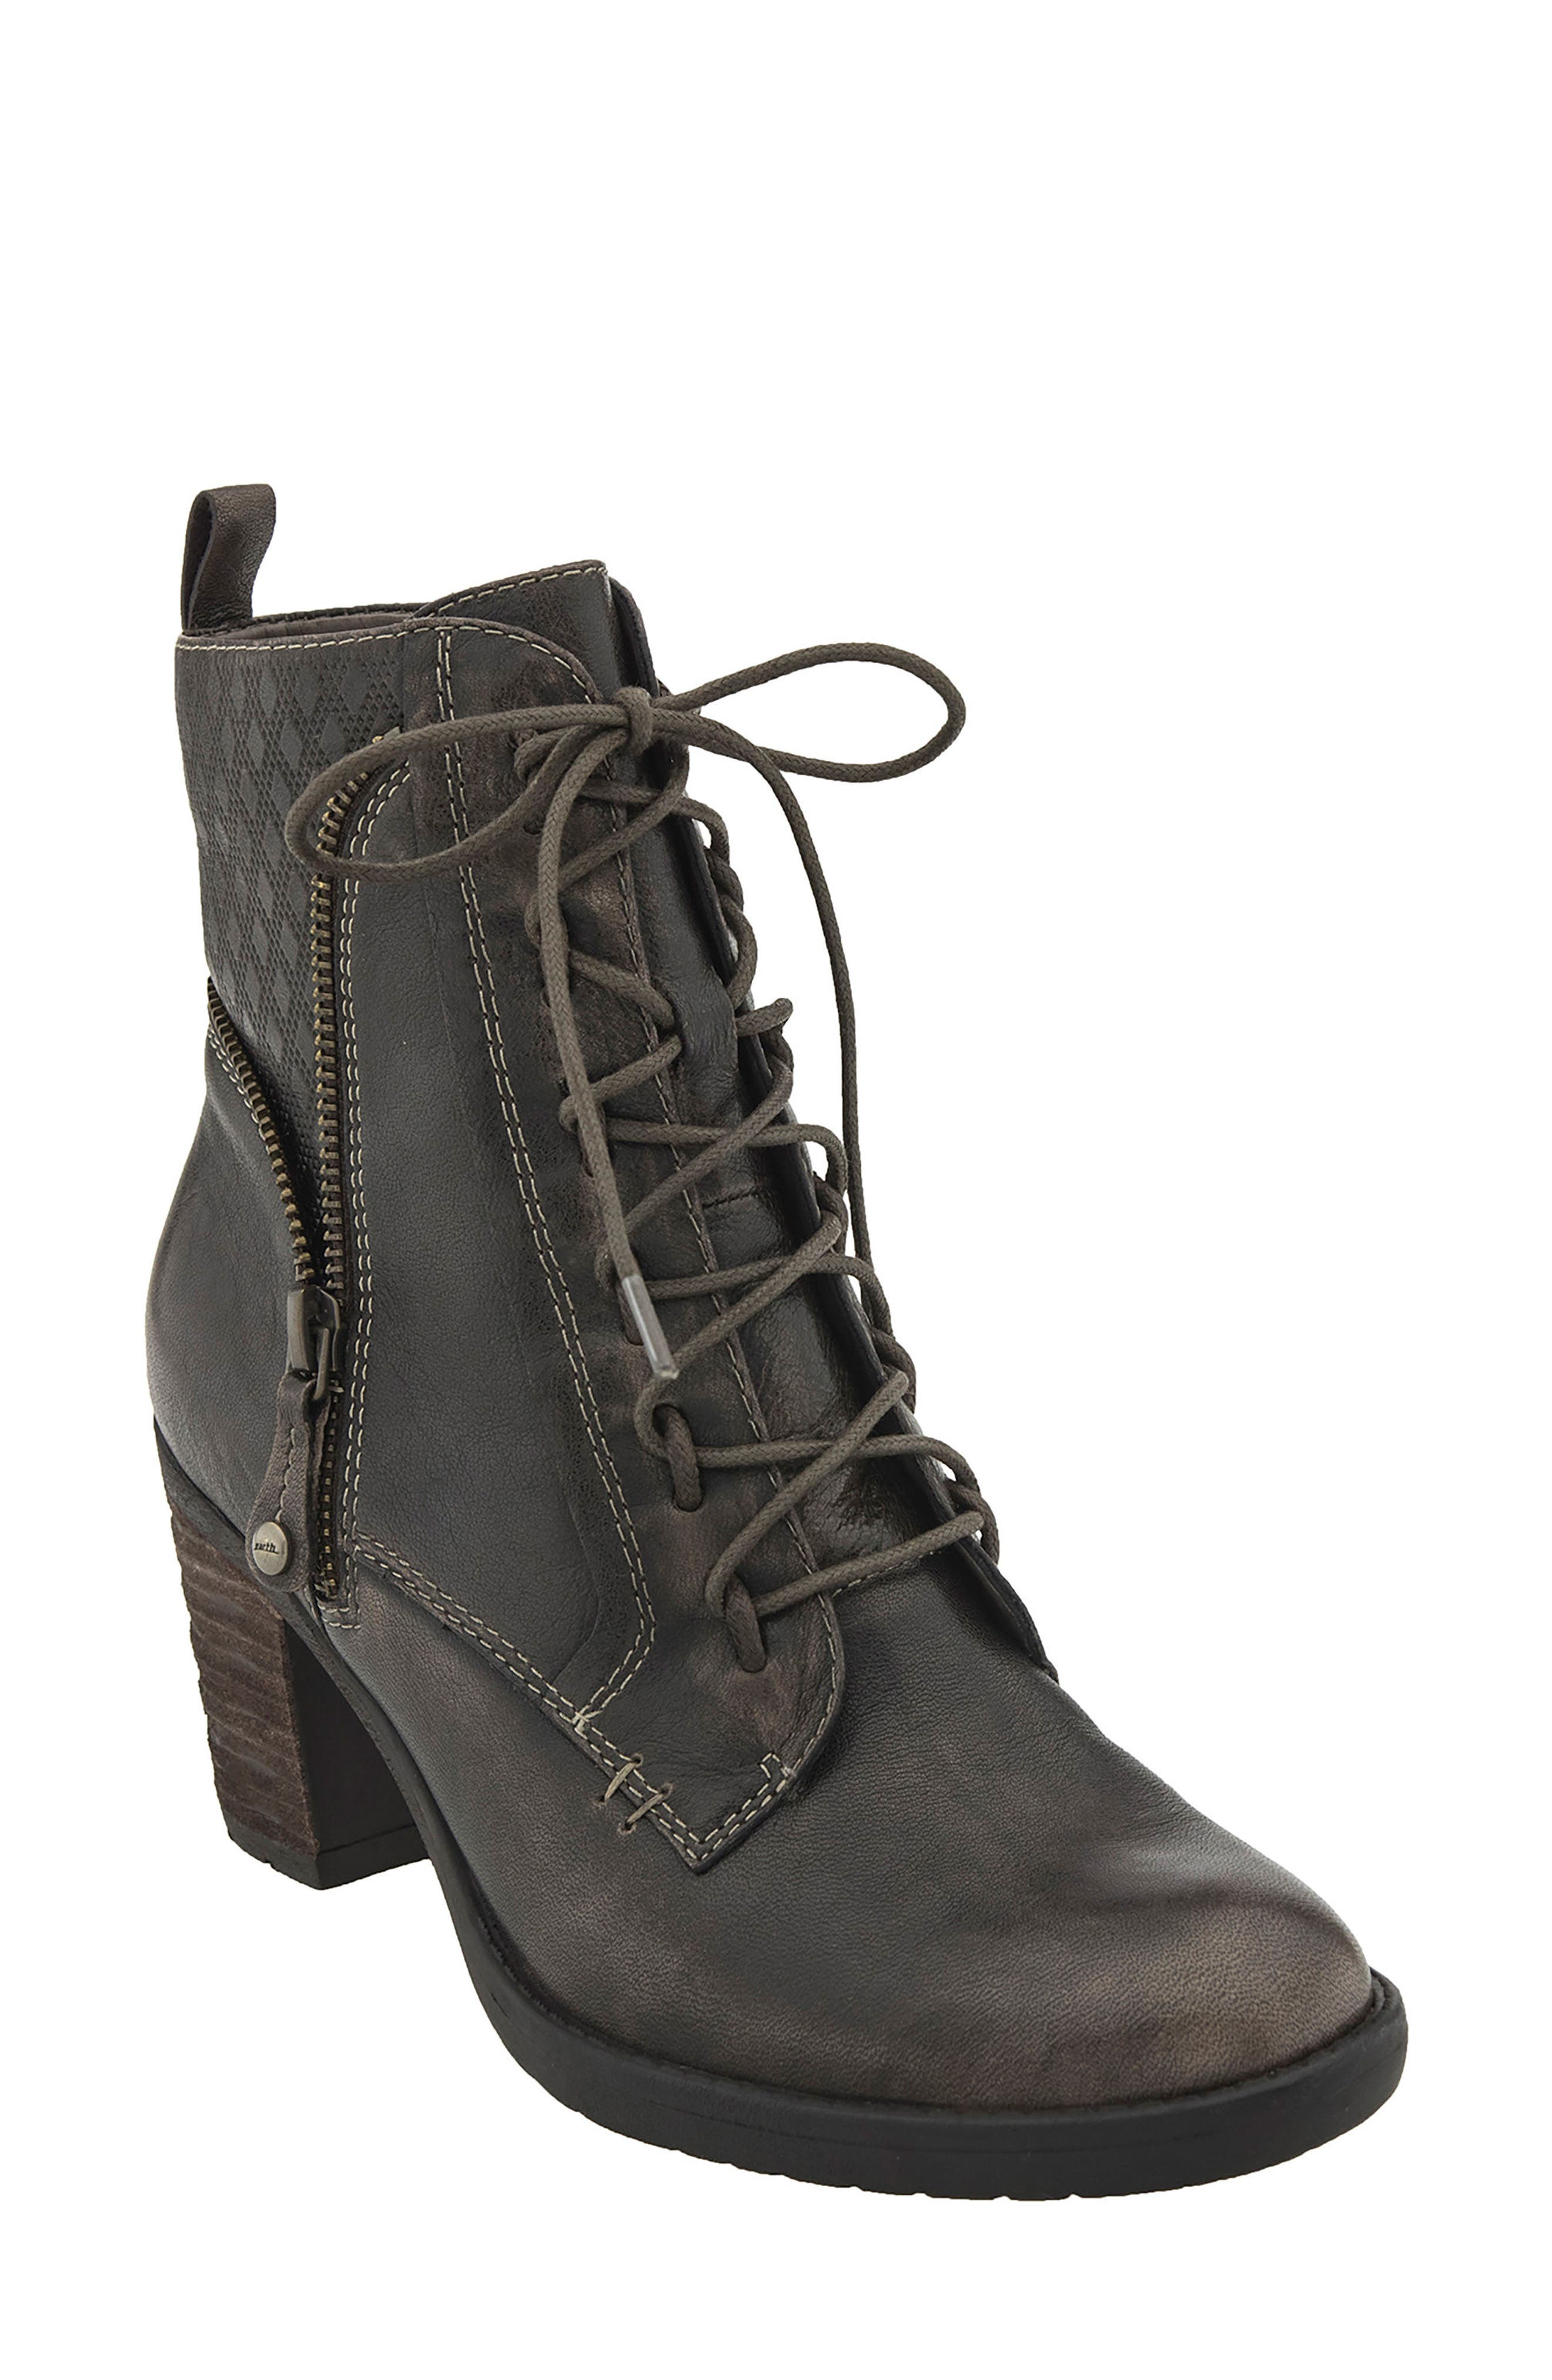 Alternate Image 1 Selected - Earth® Missoula Lace-Up Boot (Women)